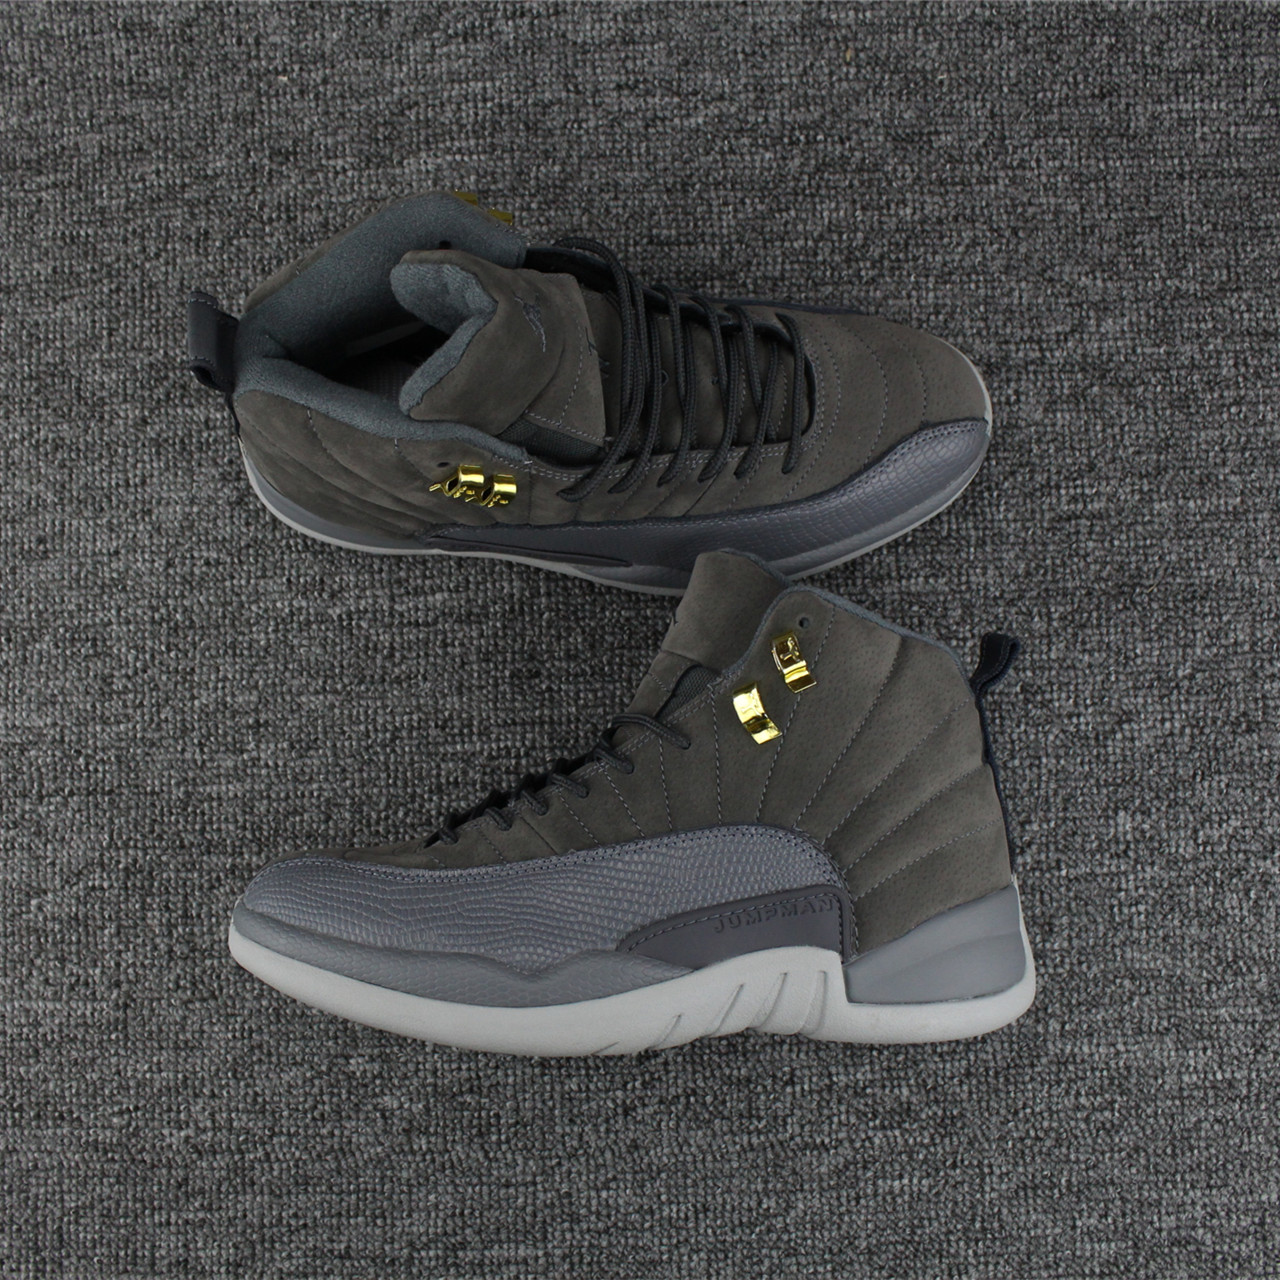 Jordans 12 Cool Grey Shoes